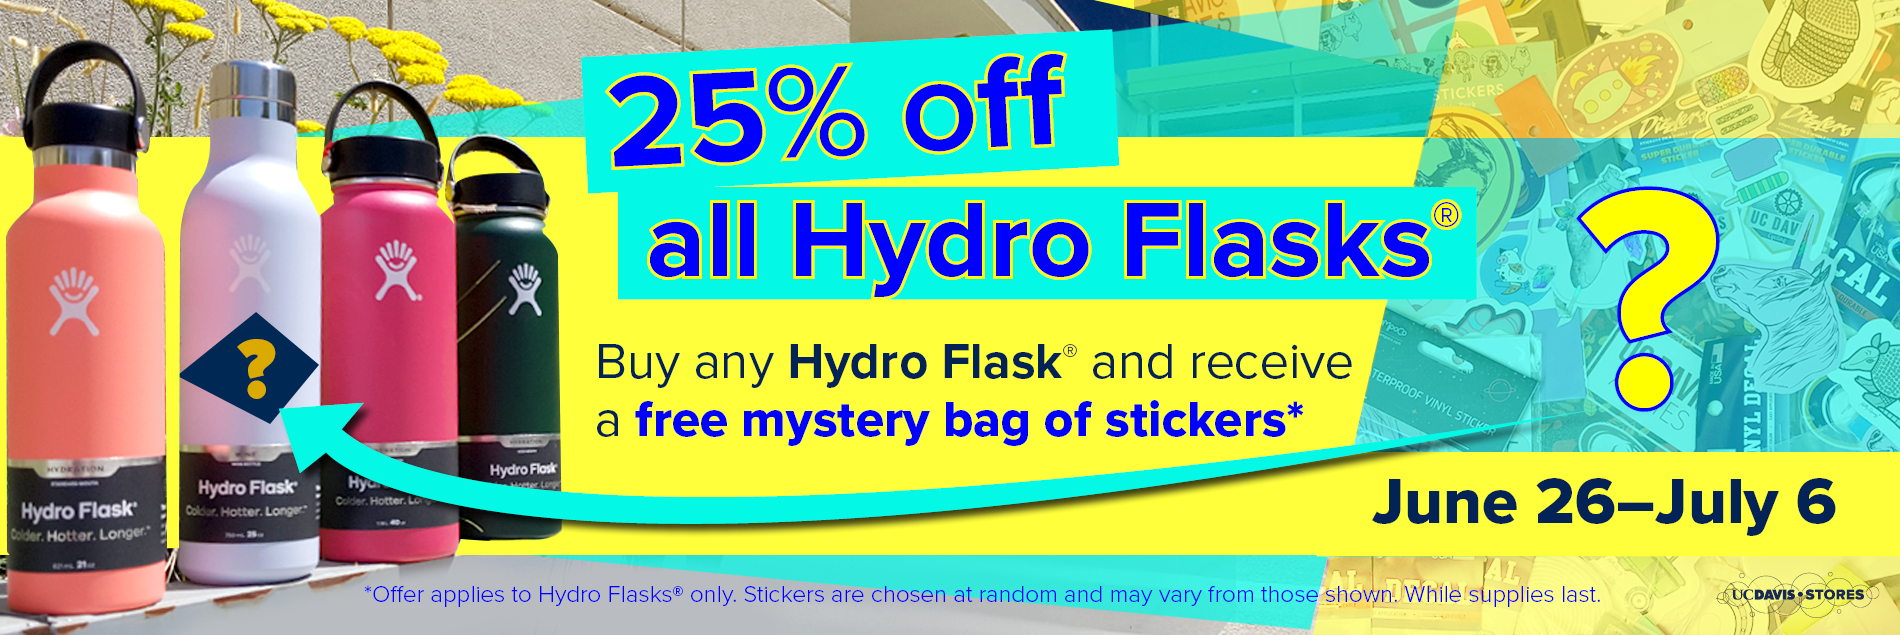 Hydro Flask Promotion